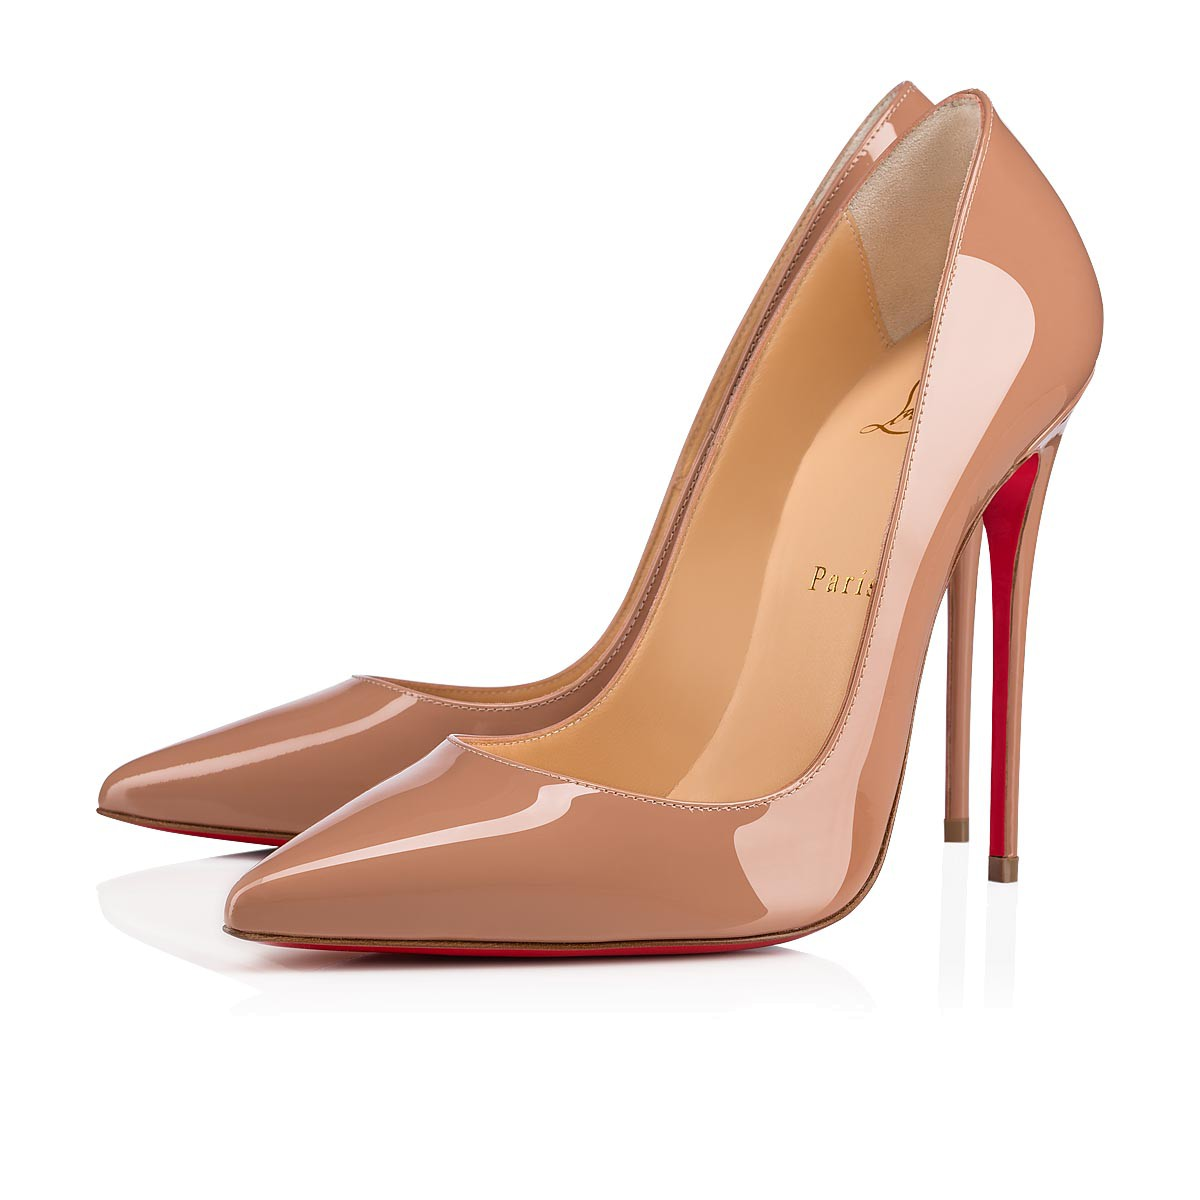 f78671060b8 So Kate 120 Nude Patent Leather - Women Shoes - Christian Louboutin